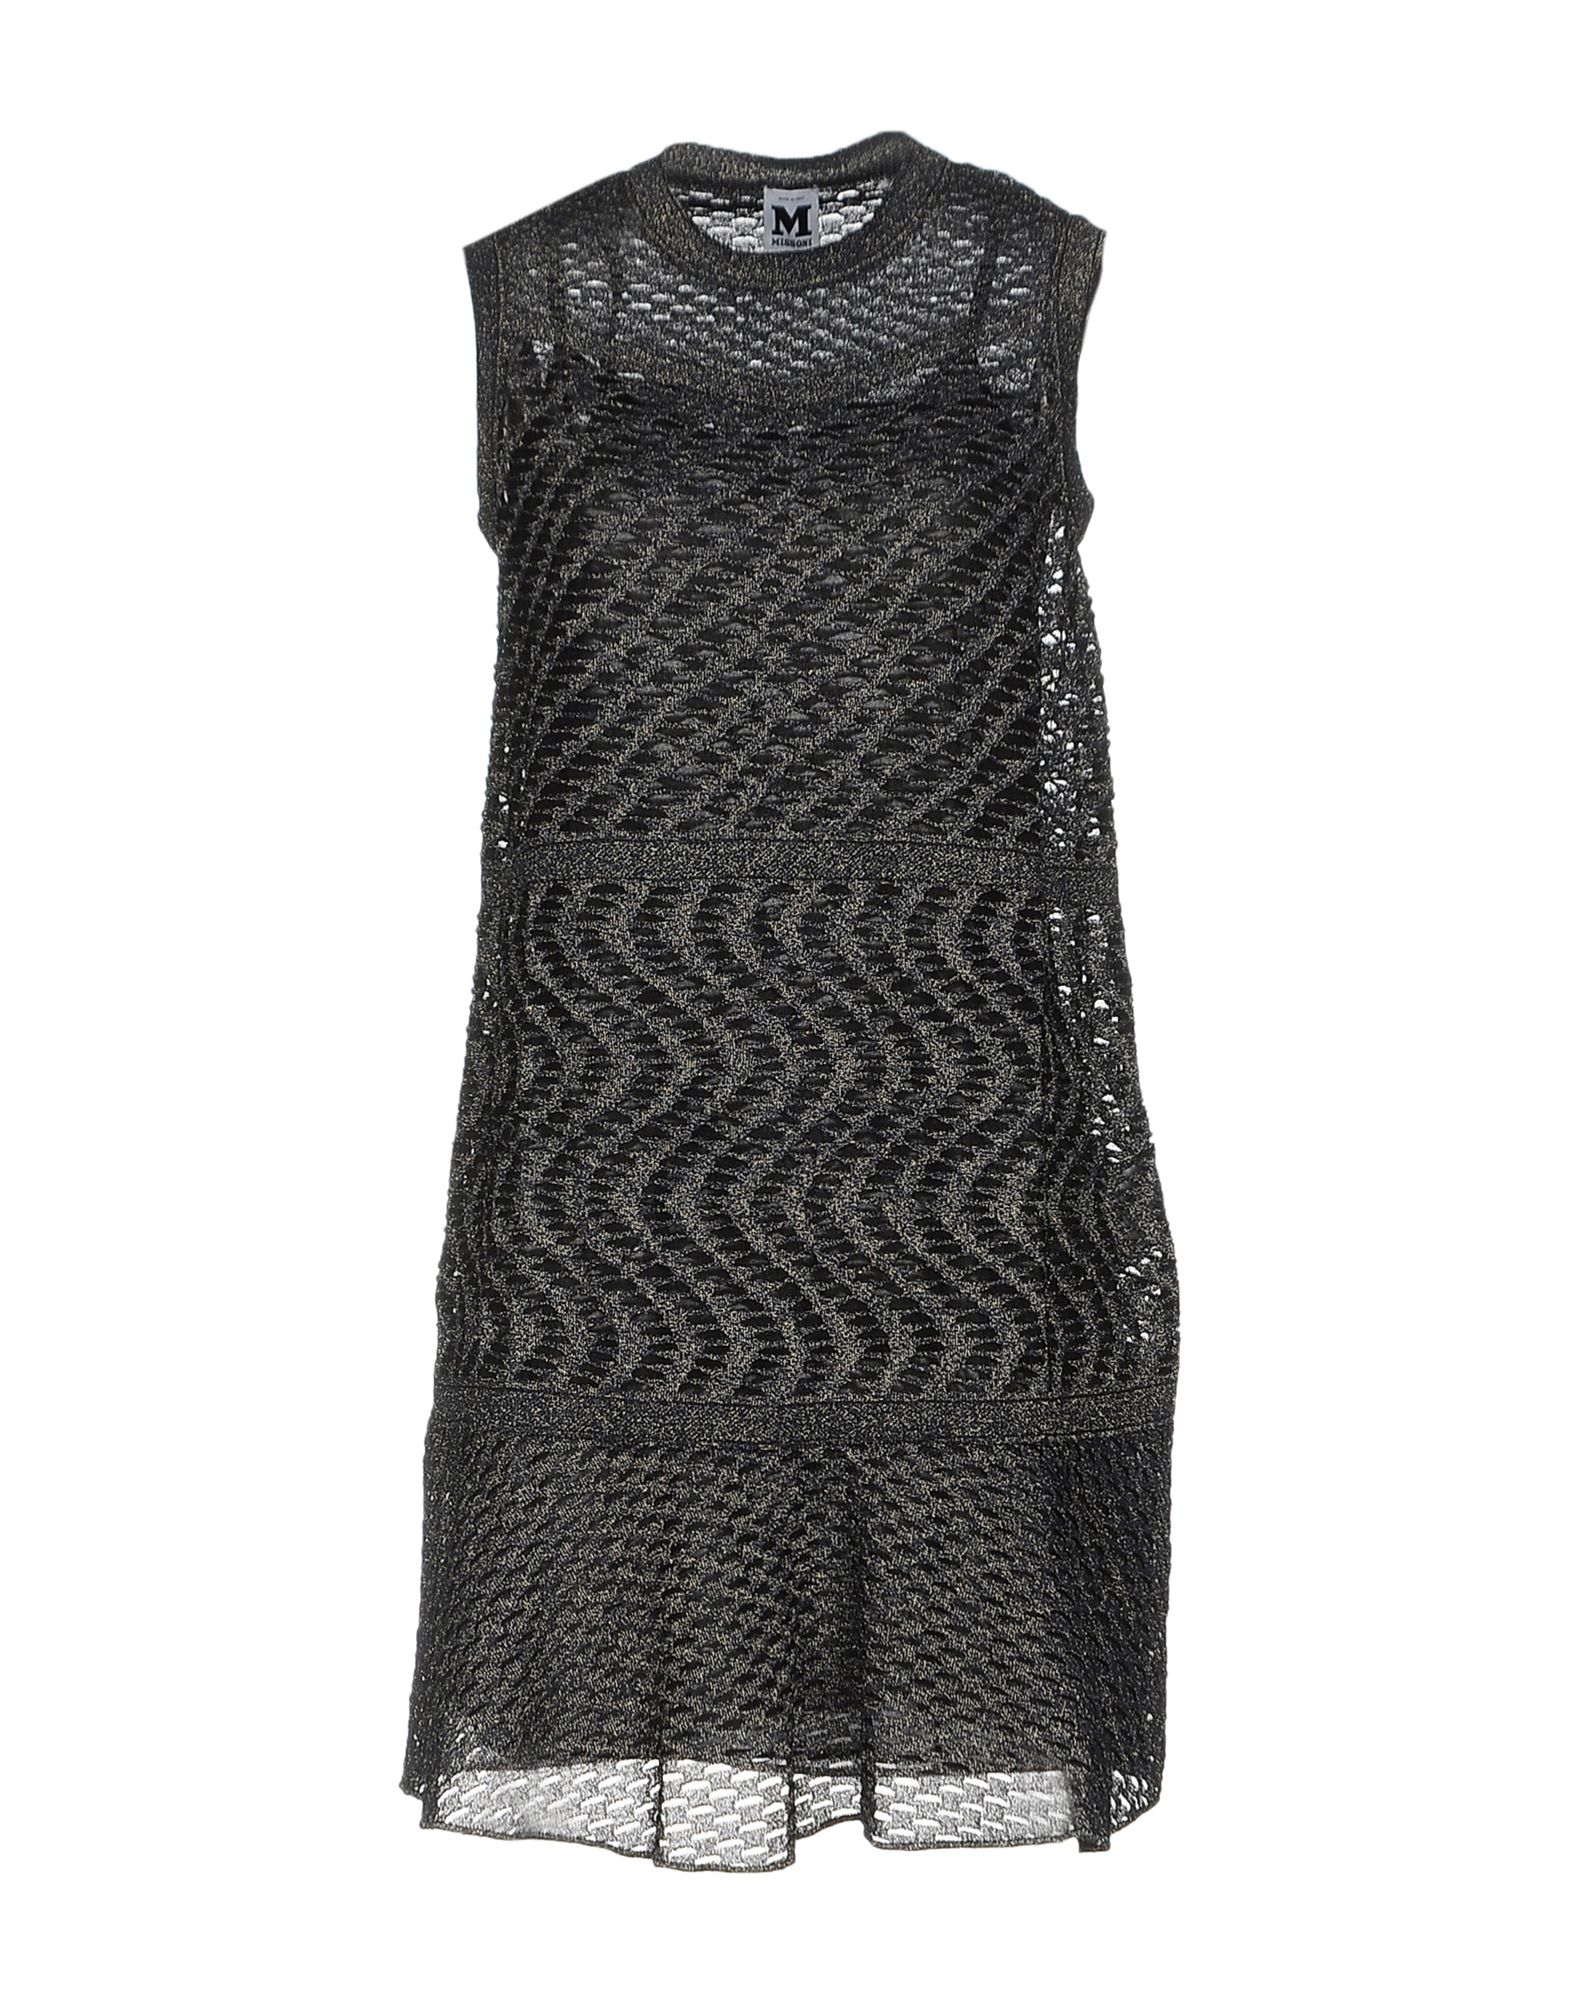 SOLD OUT Vestito Corto M Missoni Donna - Acquista online su OLDhbFZi